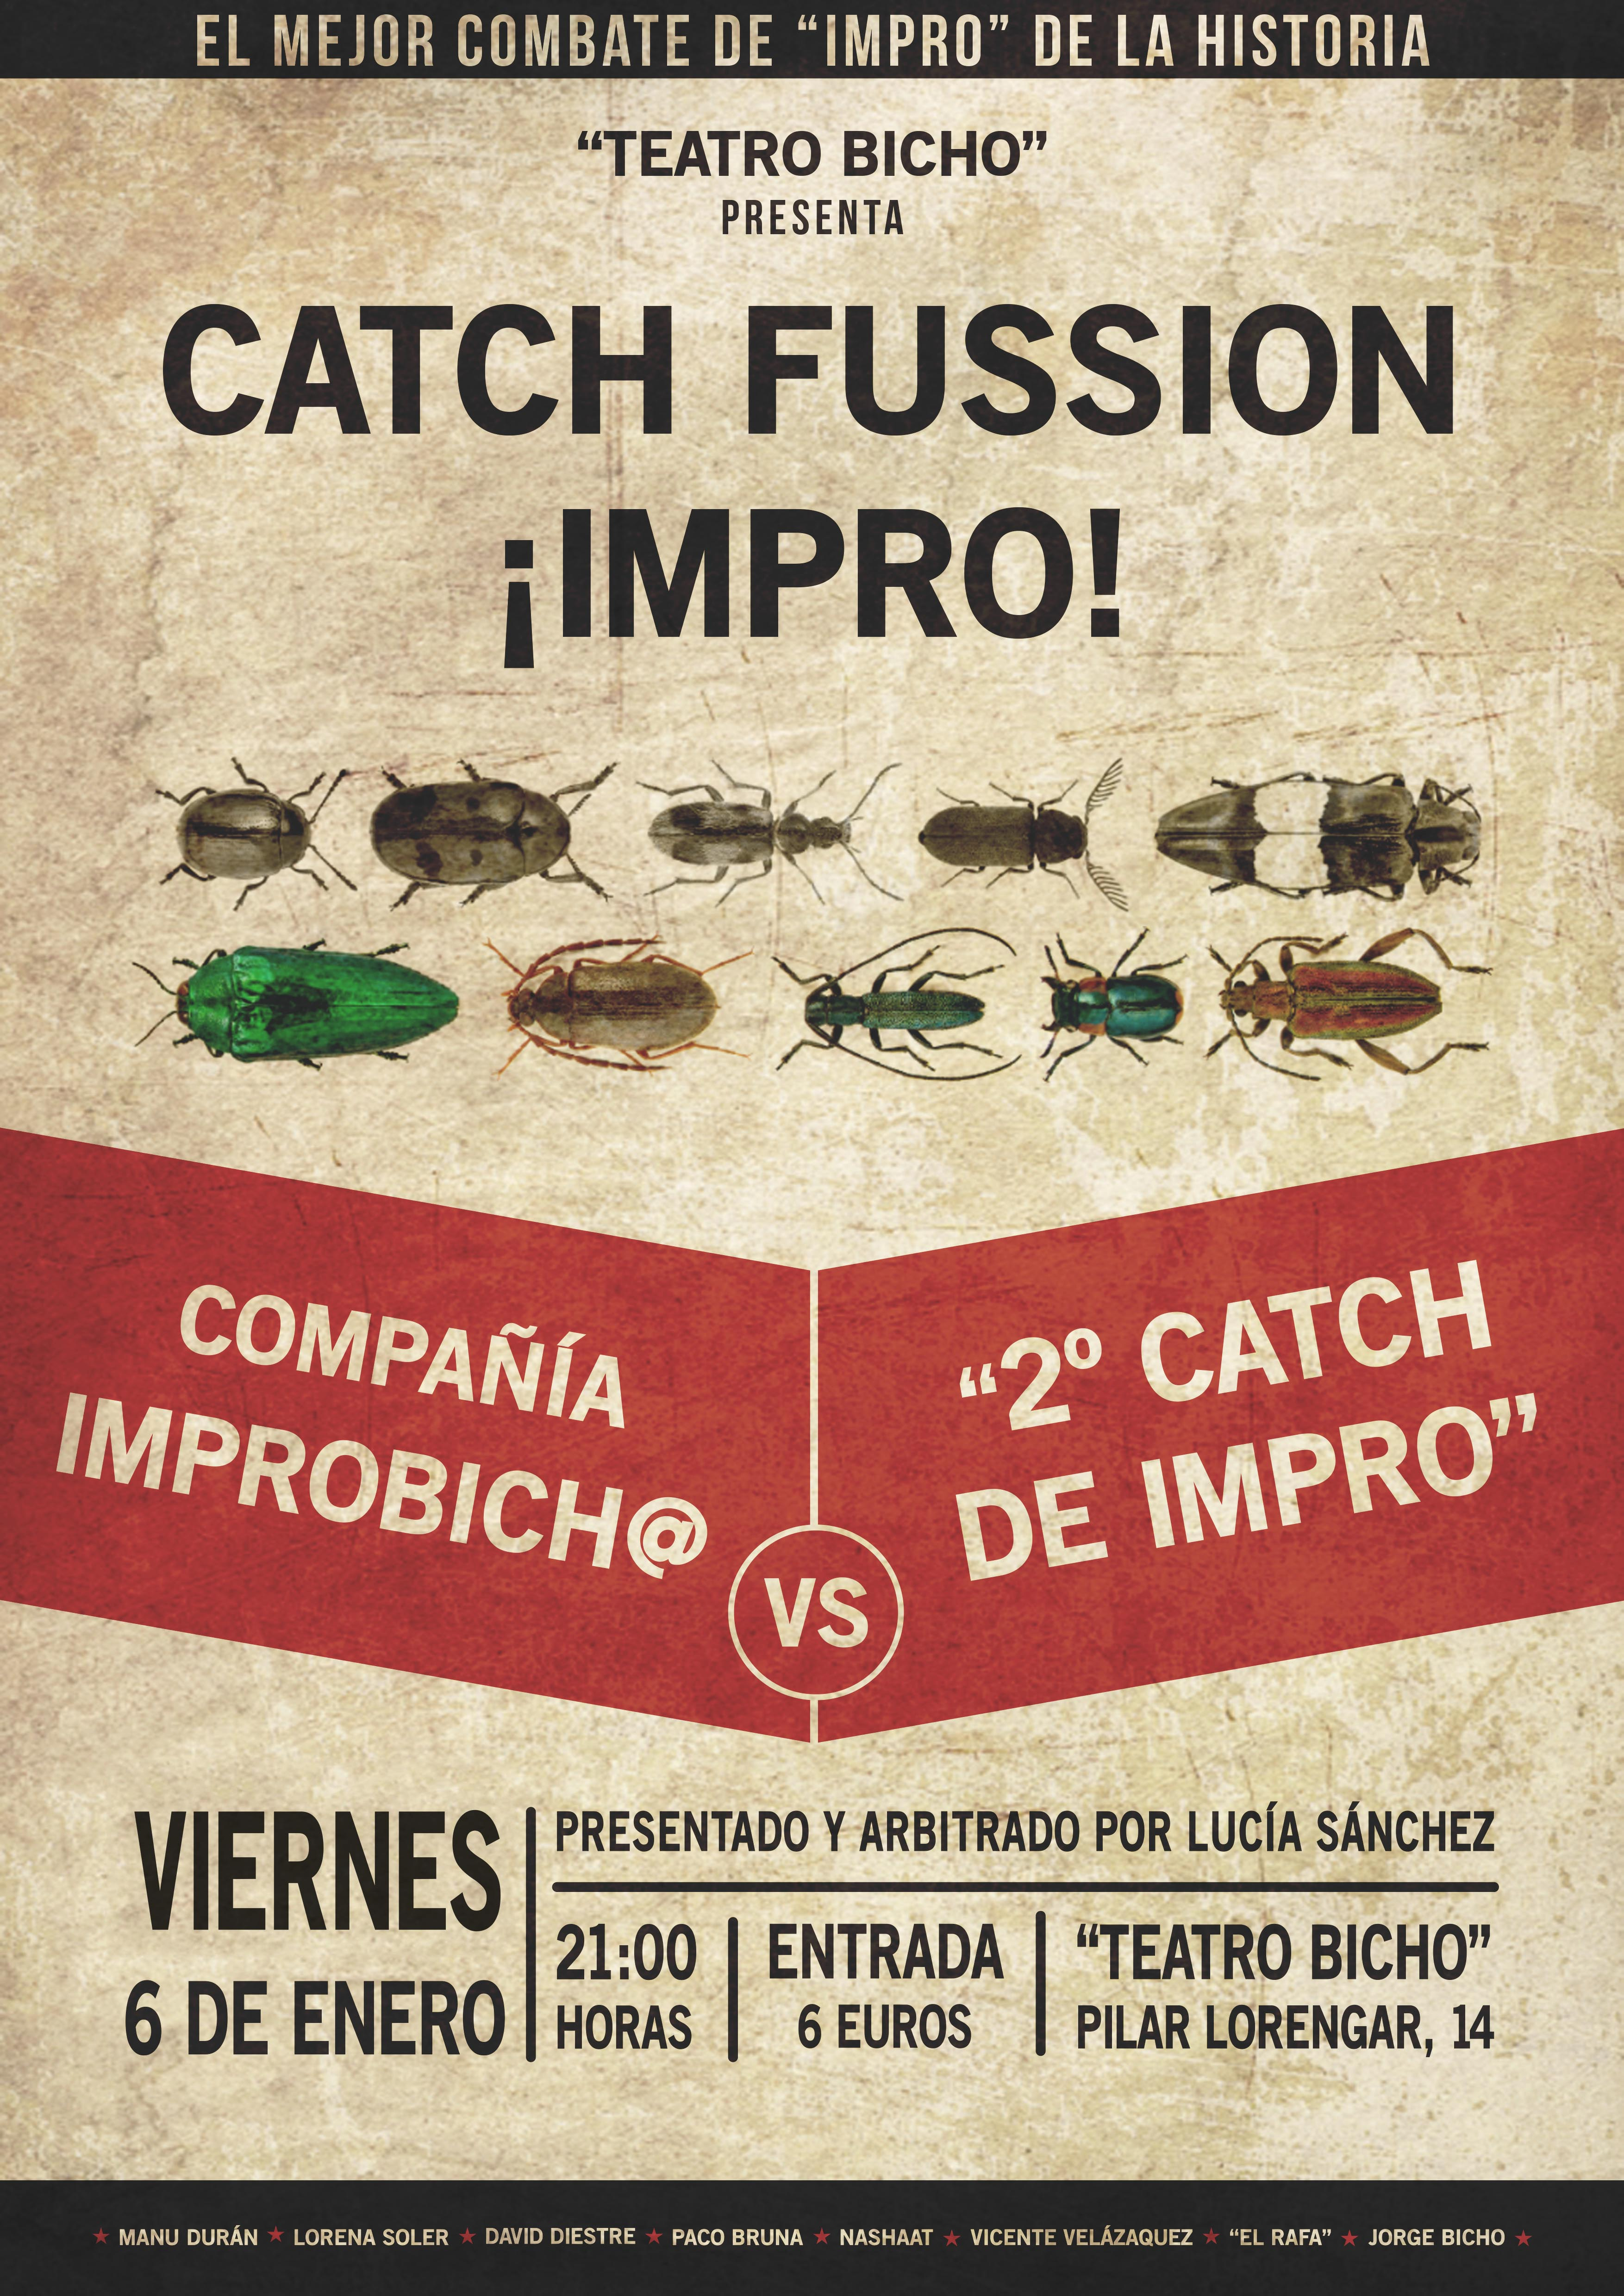 Catch Fussion